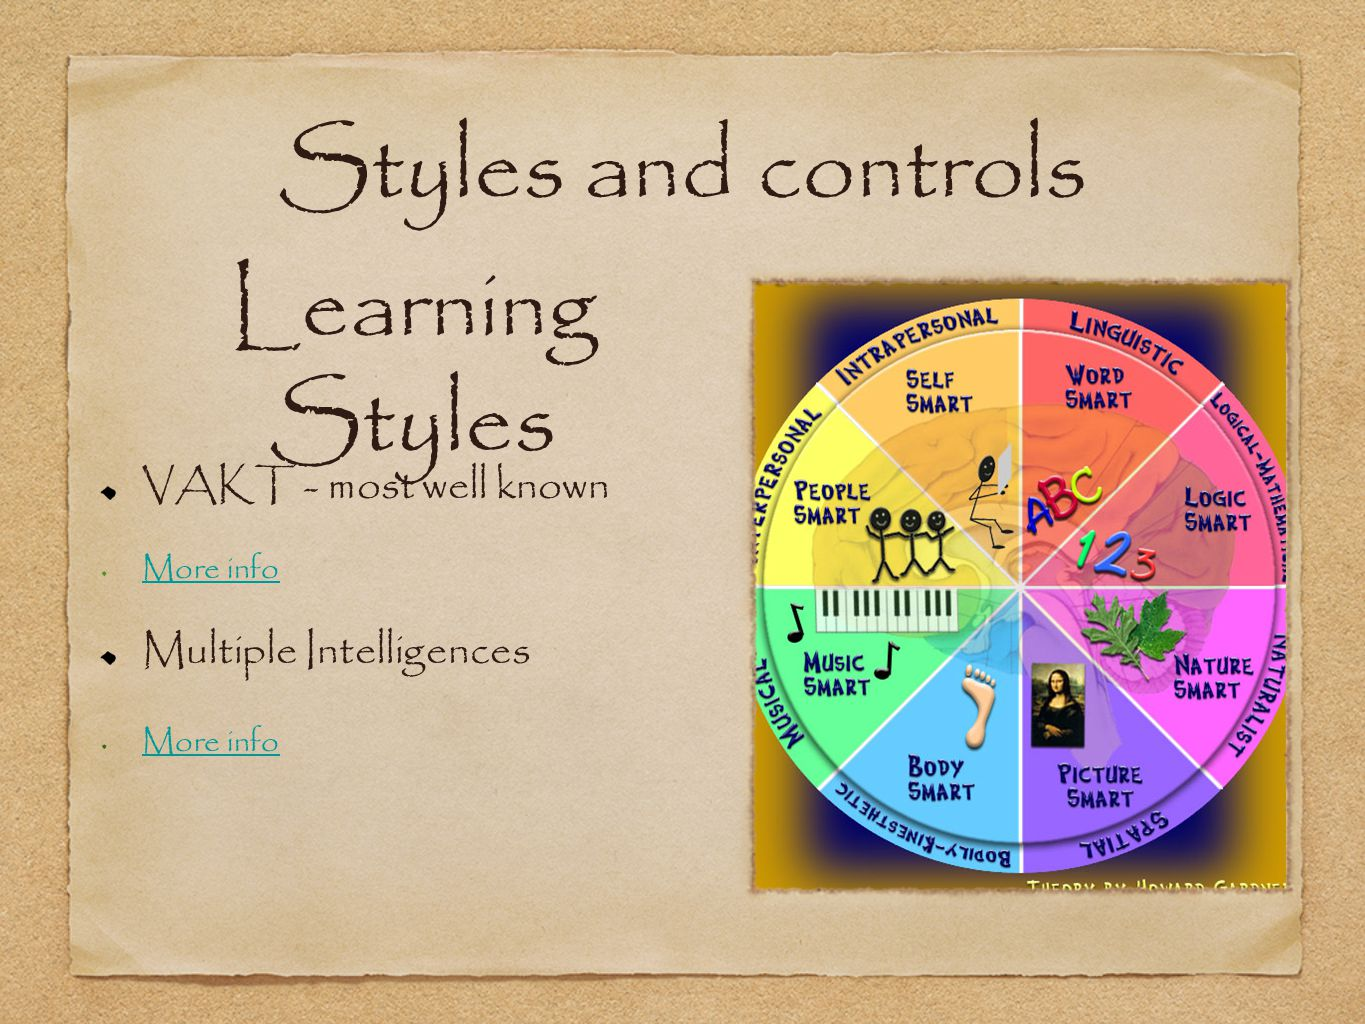 Styles and controls VAKT - most well known More info Multiple Intelligences More info Learning Styles